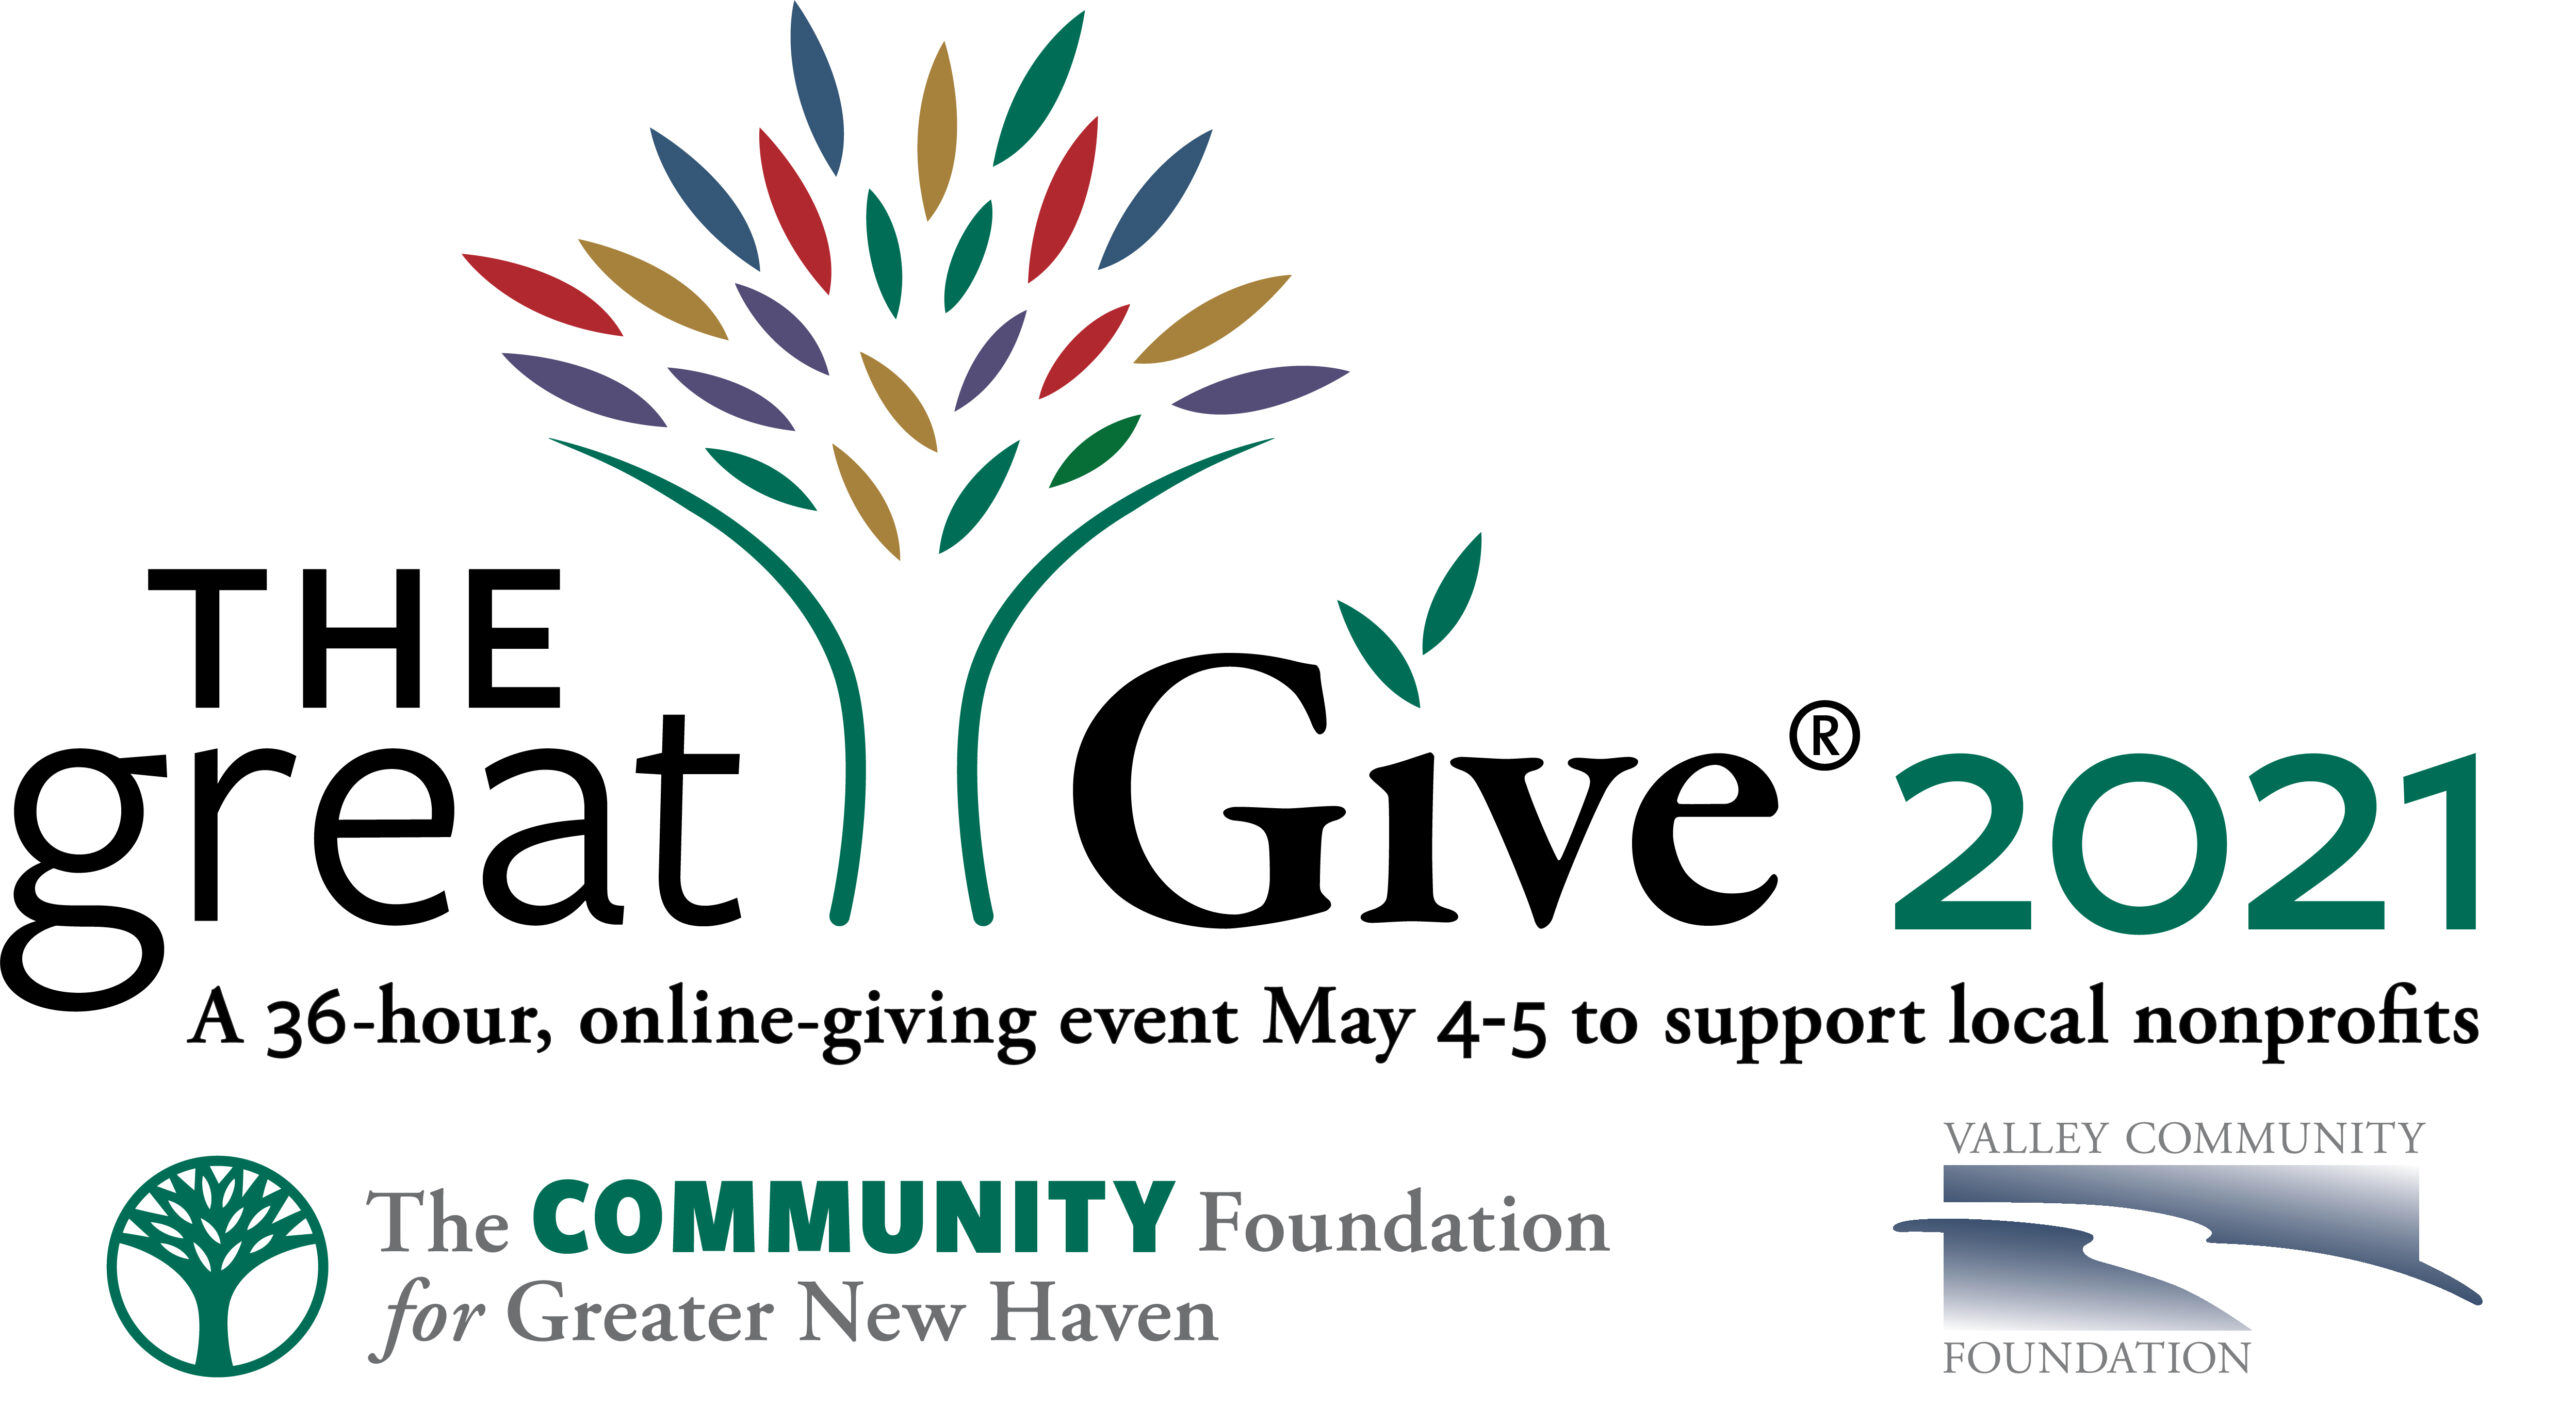 The Great Give 2021 May 4-5